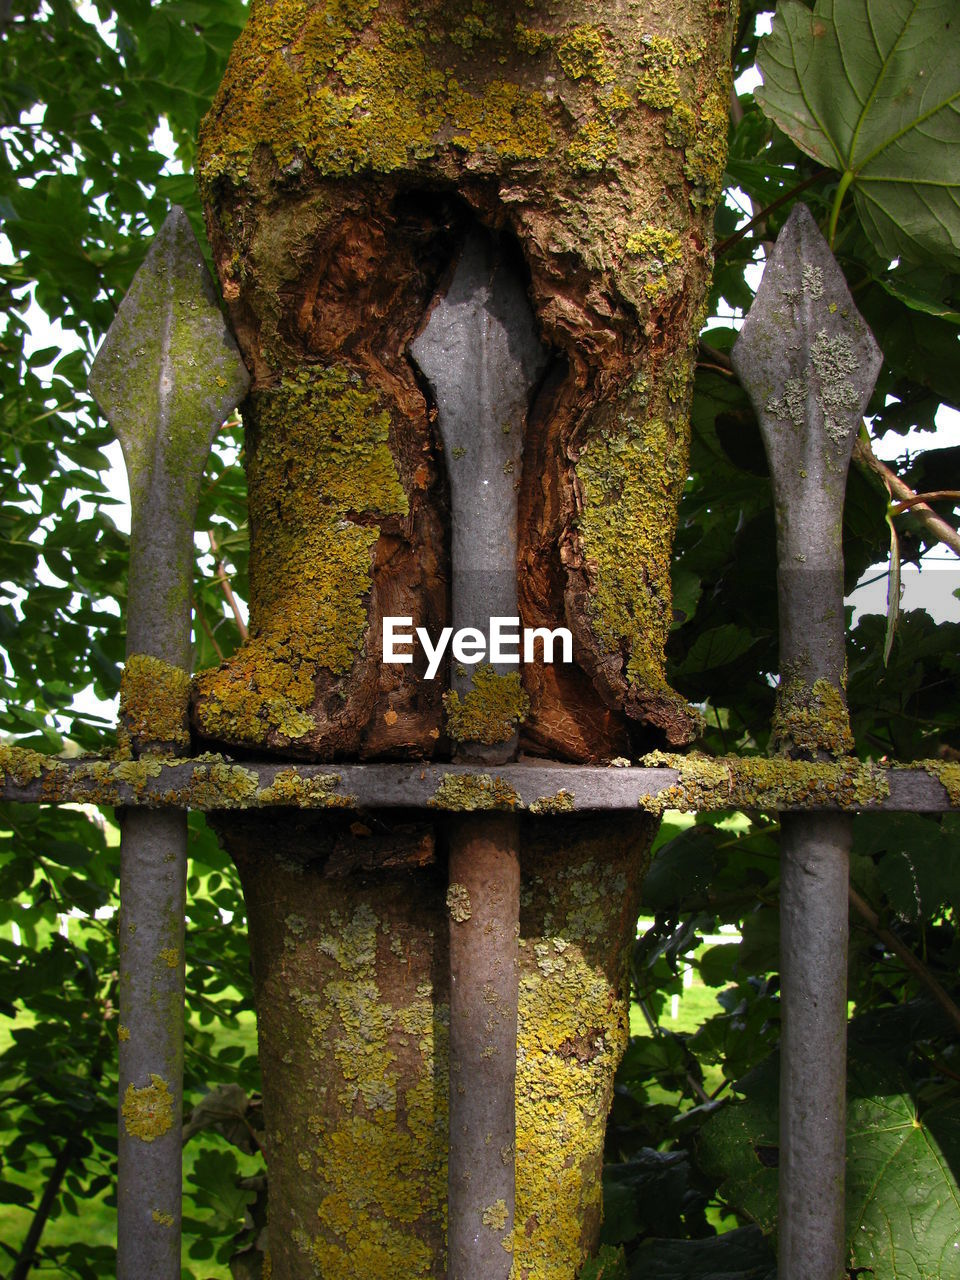 Tree trunk covered with moss in front of fence